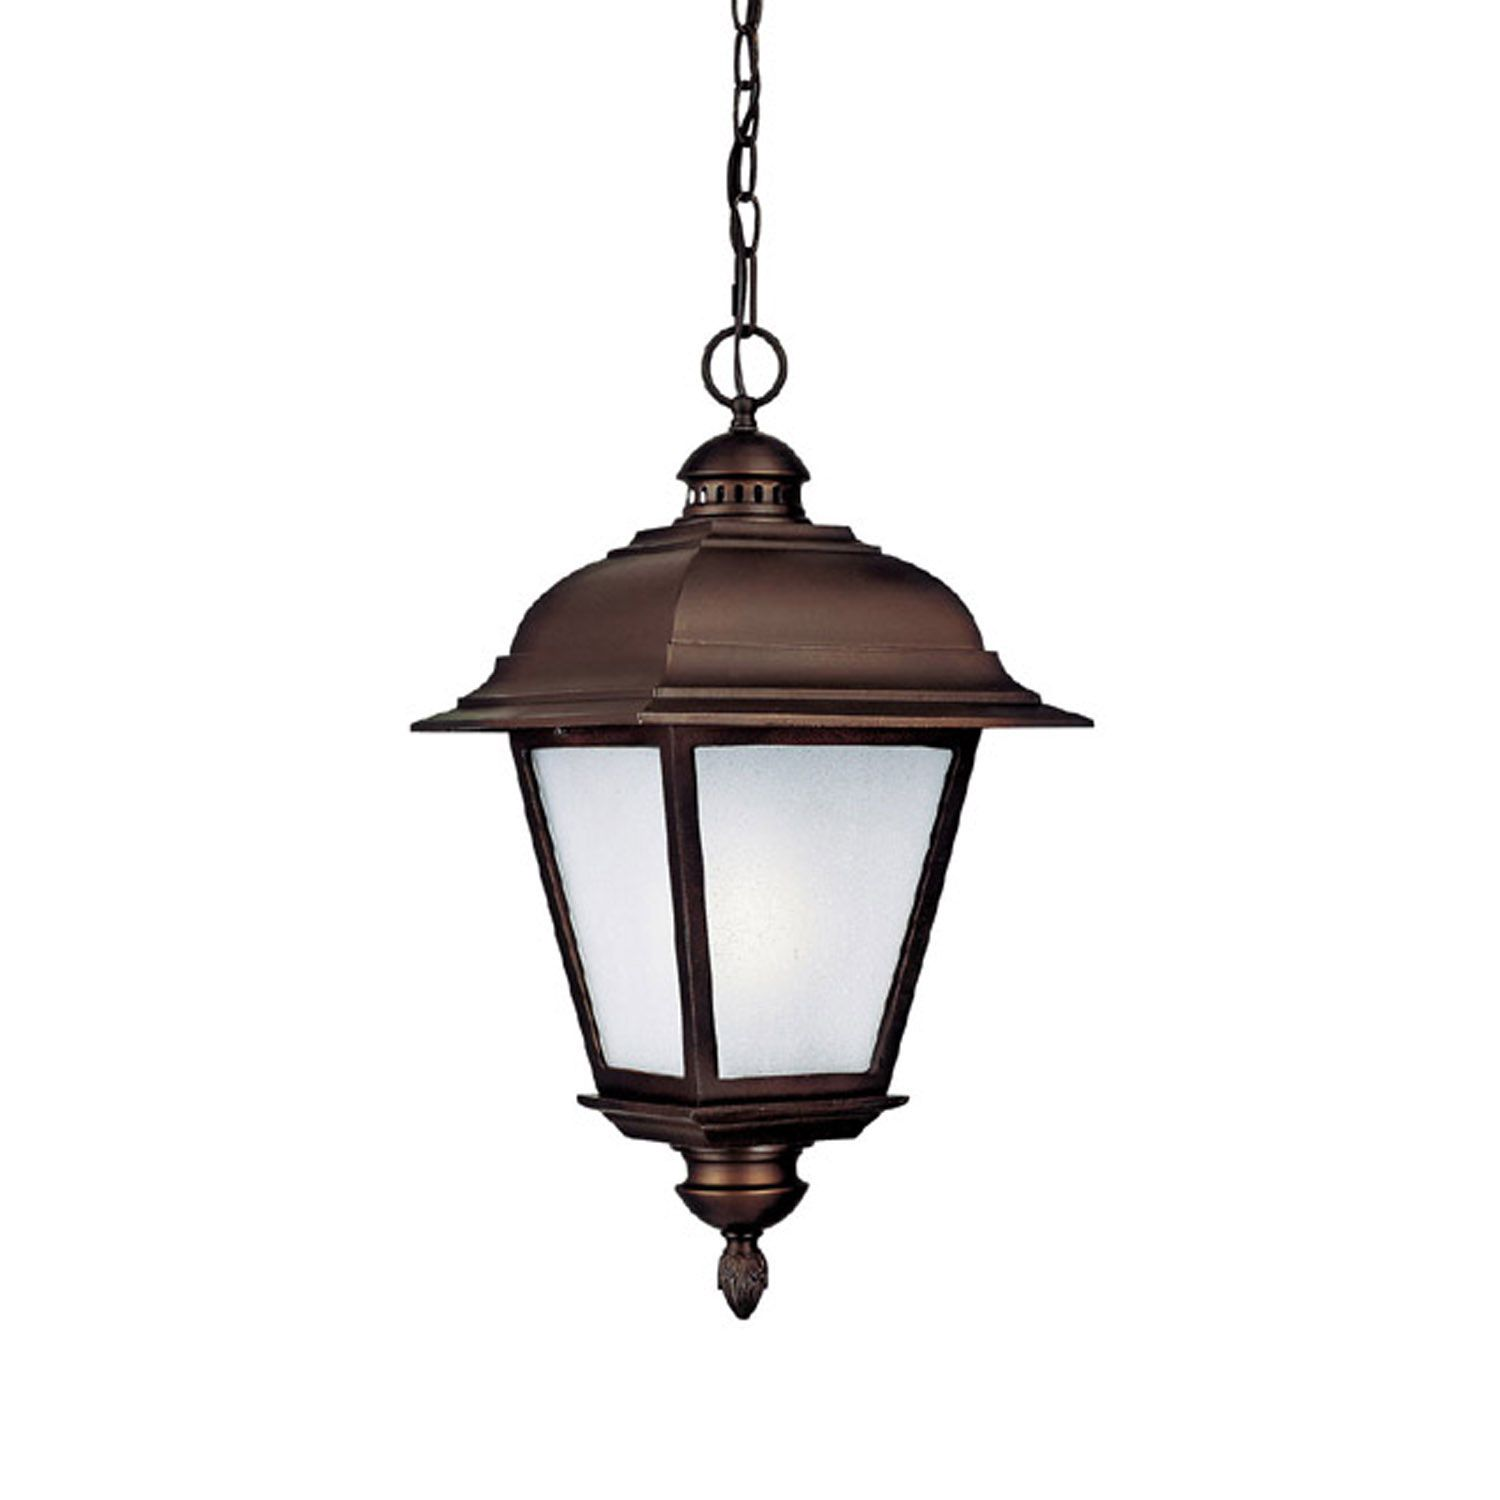 Come By Our Charleston Sc Lighting Clearance Center To See This And Other Great Fixtures At Highly Ed Prices Every Day